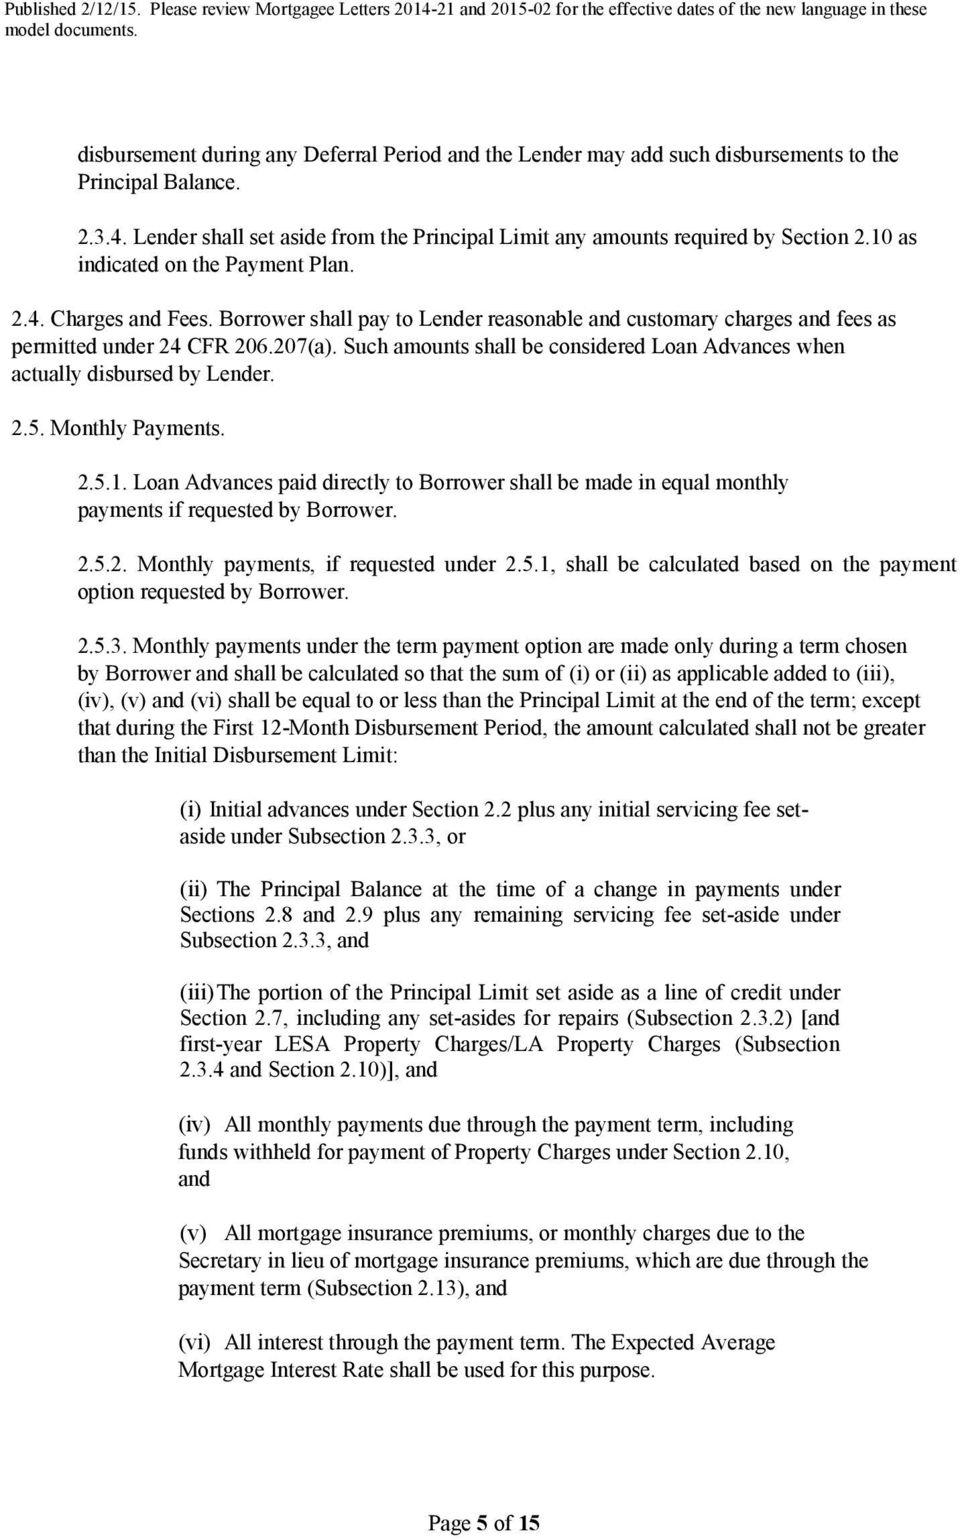 Such amounts shall be considered Loan Advances when actually disbursed by Lender. 2.5. Monthly Payments. 2.5.1.